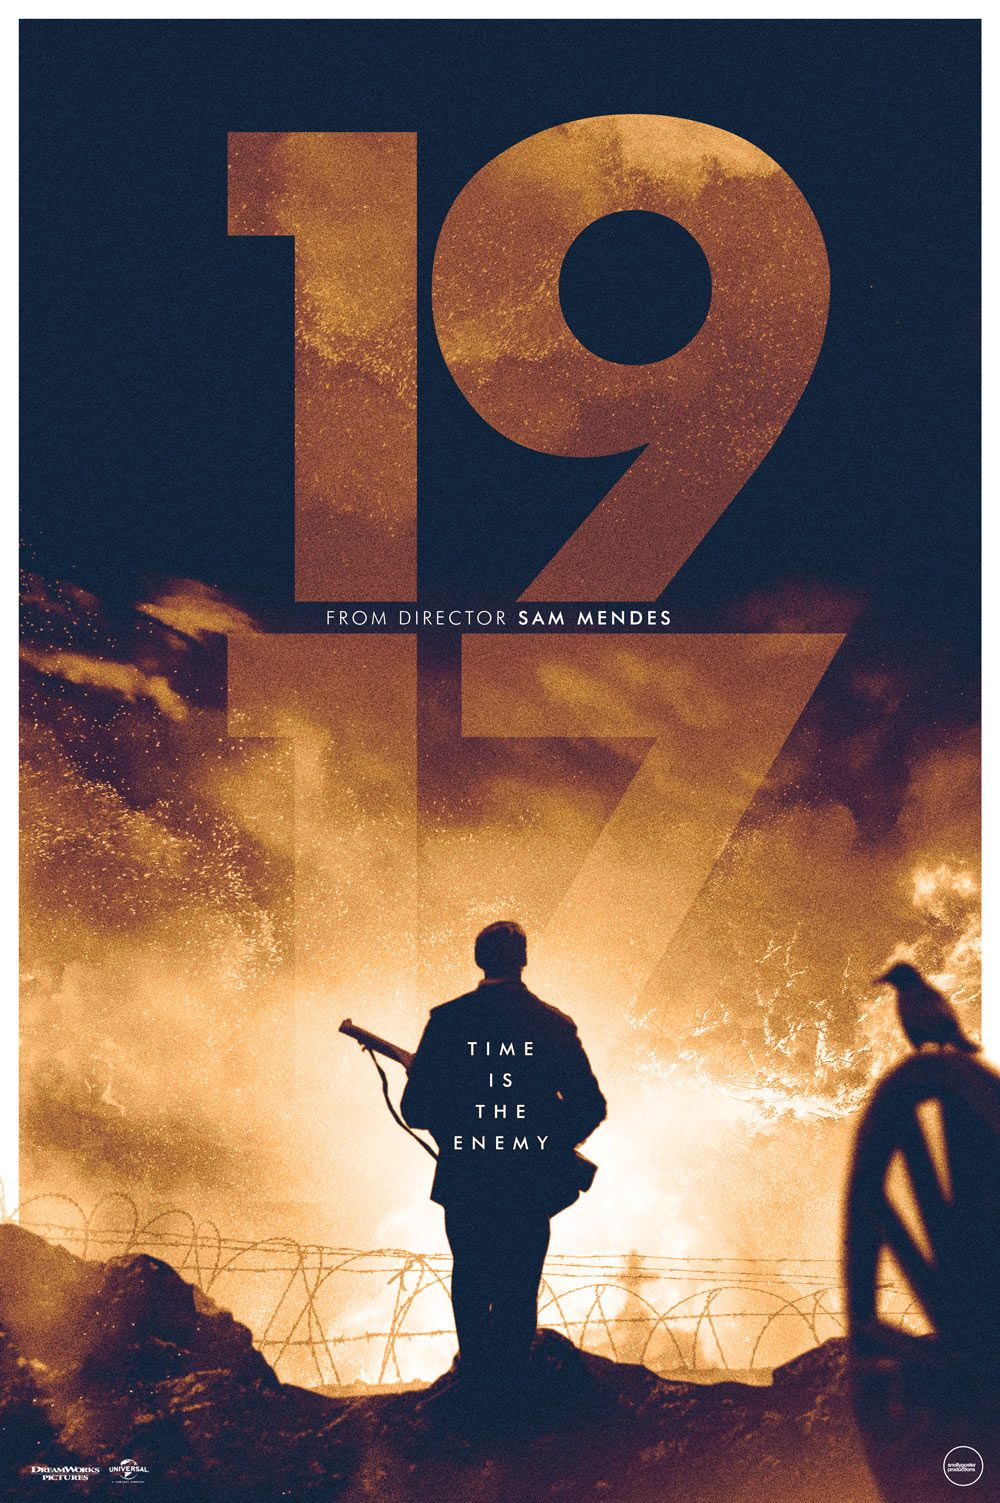 amazing fan-made poster of 1917